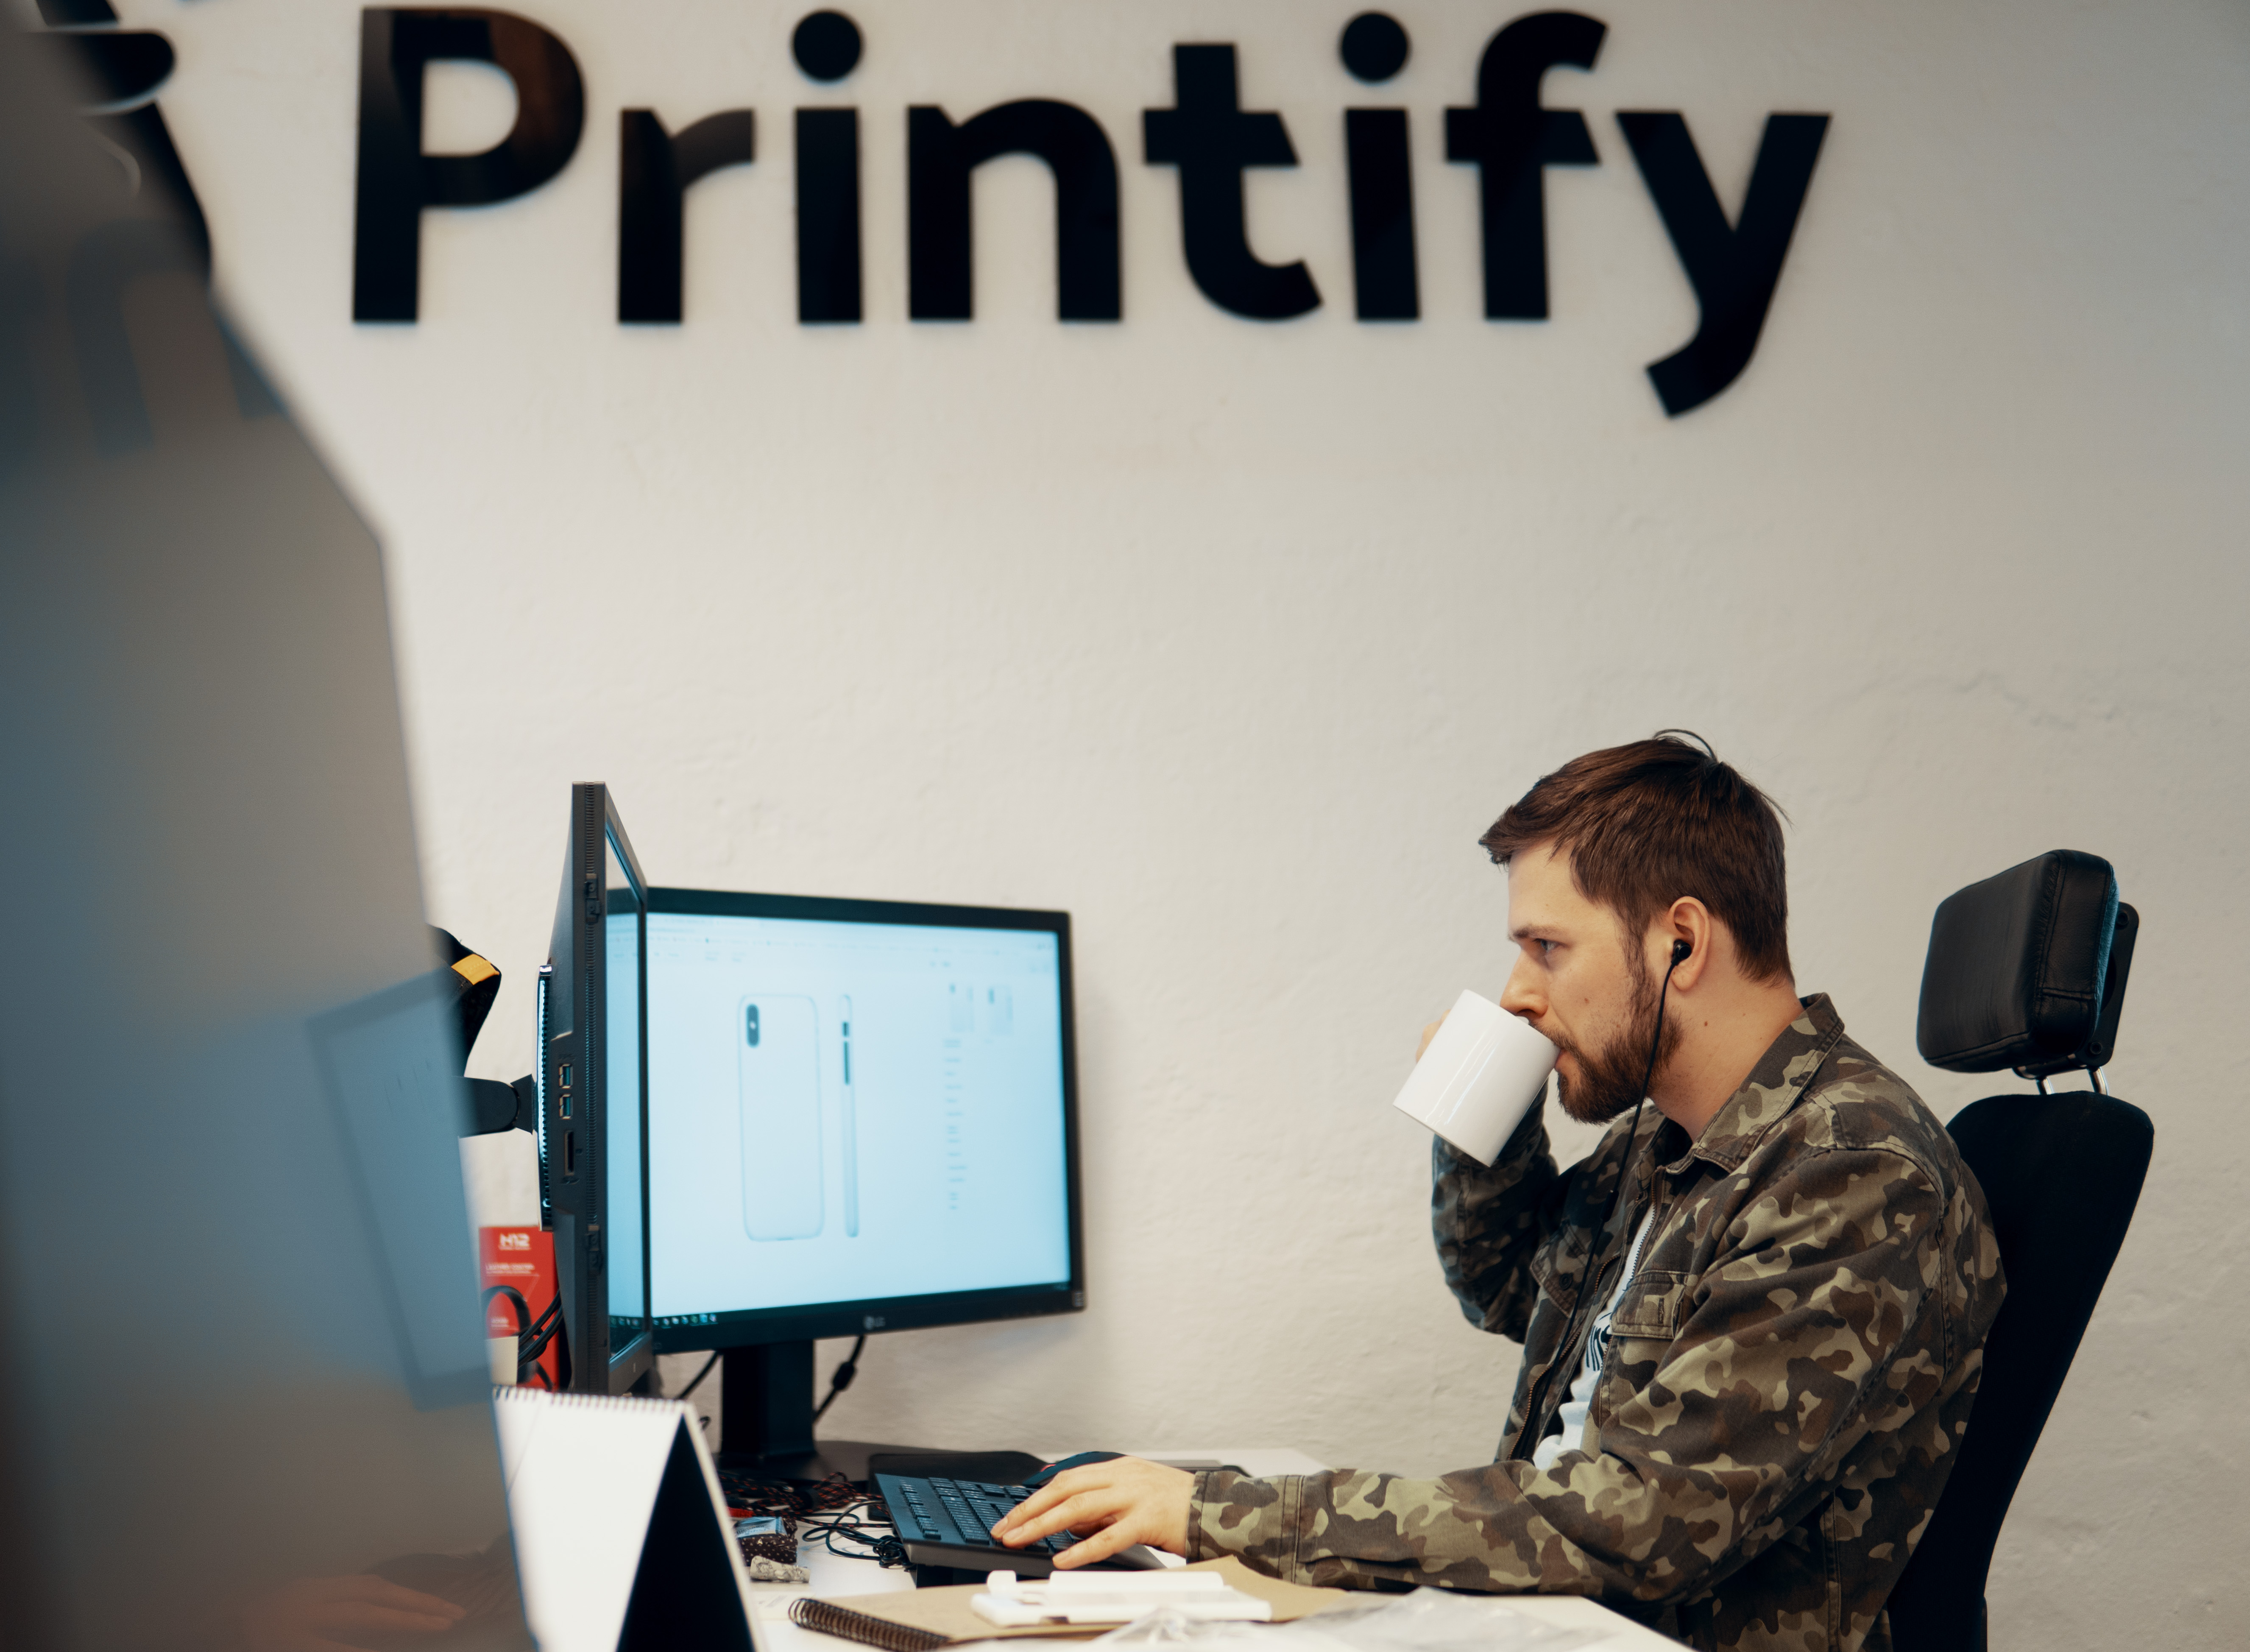 Printify raises $3M to expand its marketplace for custom printing